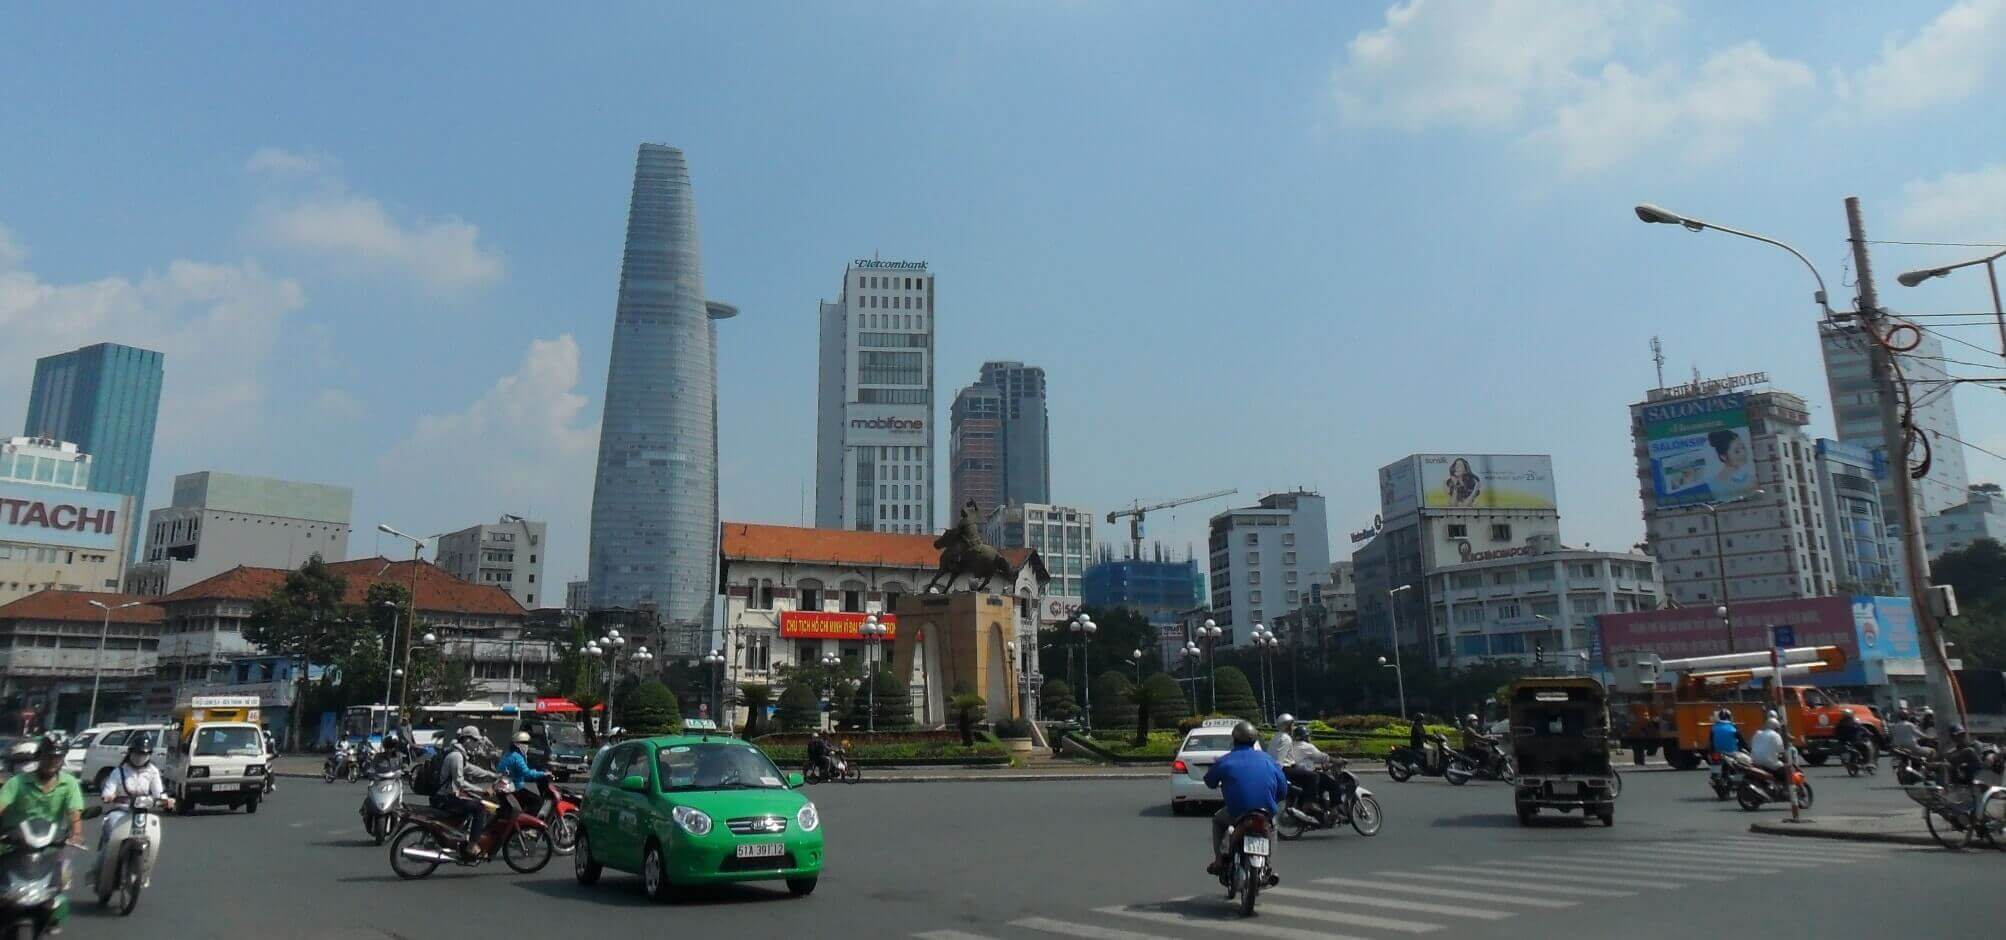 Vietnam Economy Among Asia's Strongest, Can it Stay?